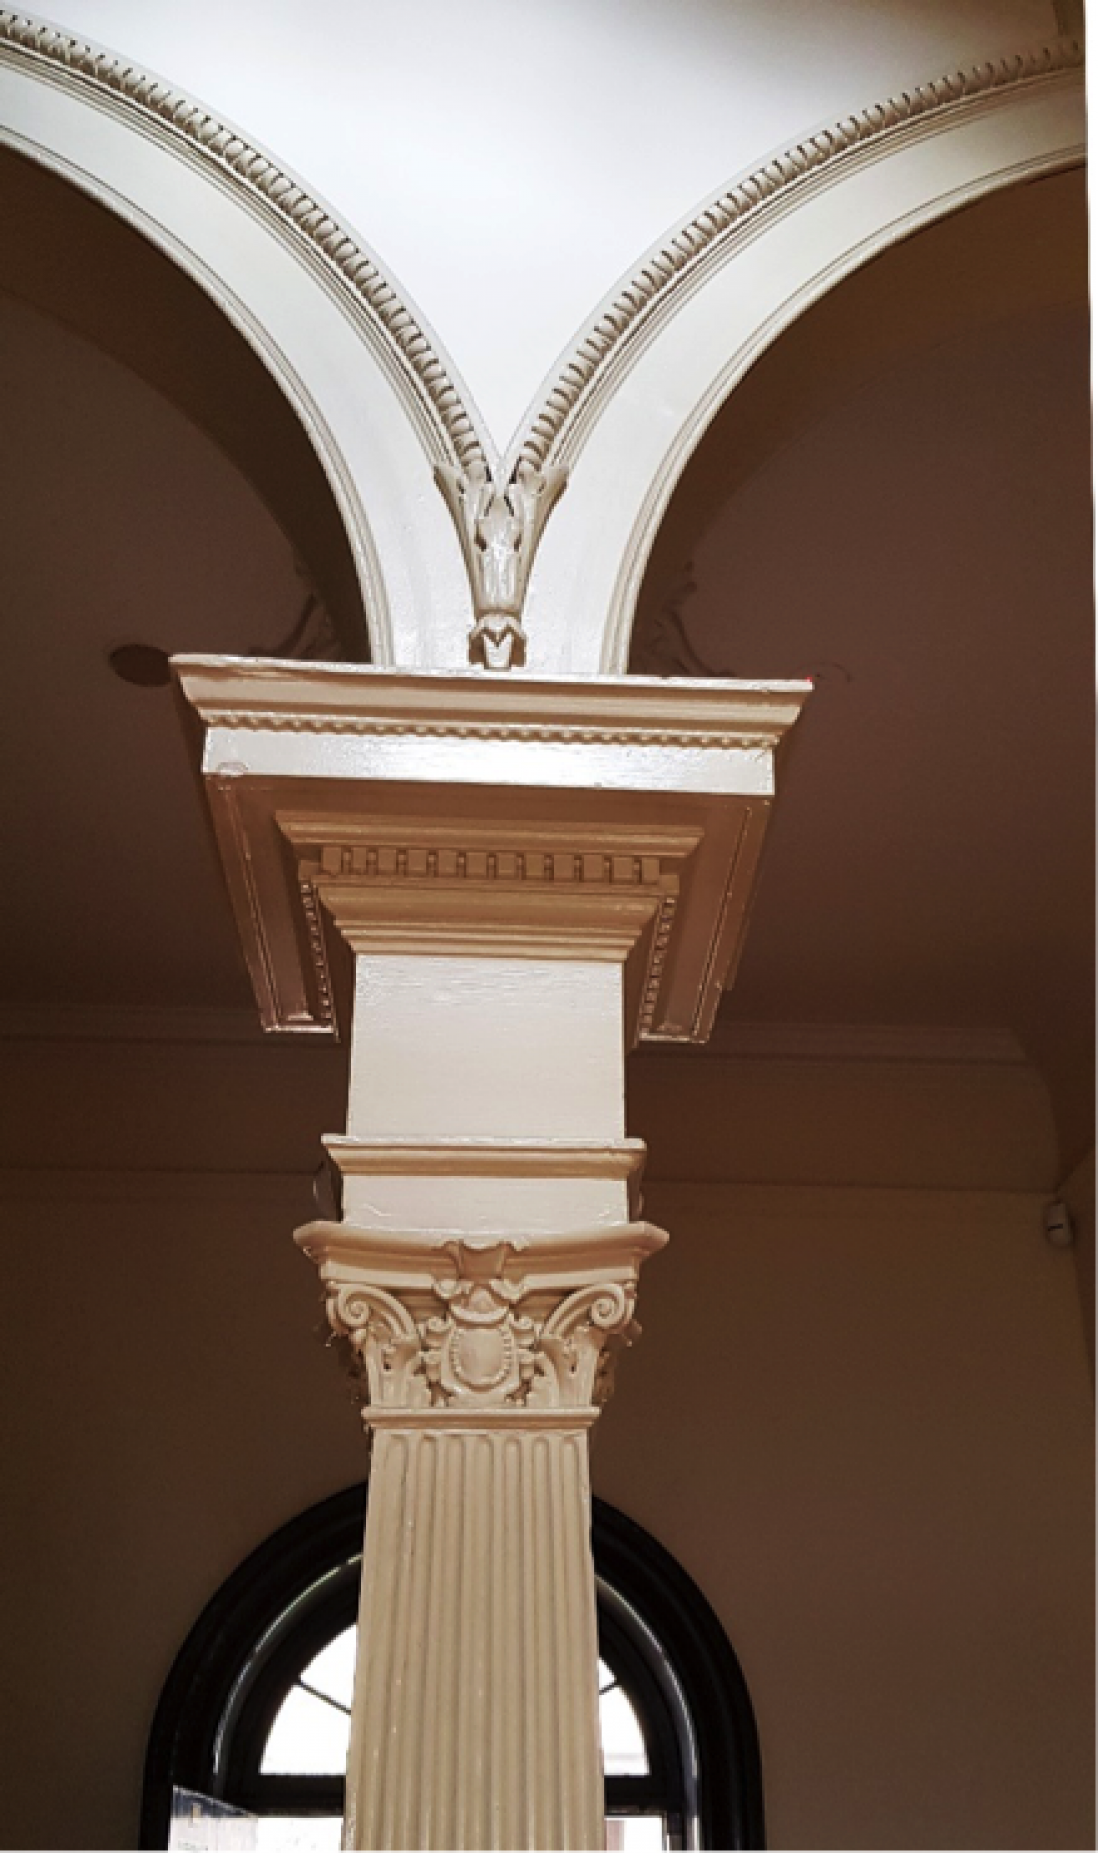 Image of the Corinthian capital supporting the archways at The Mint.